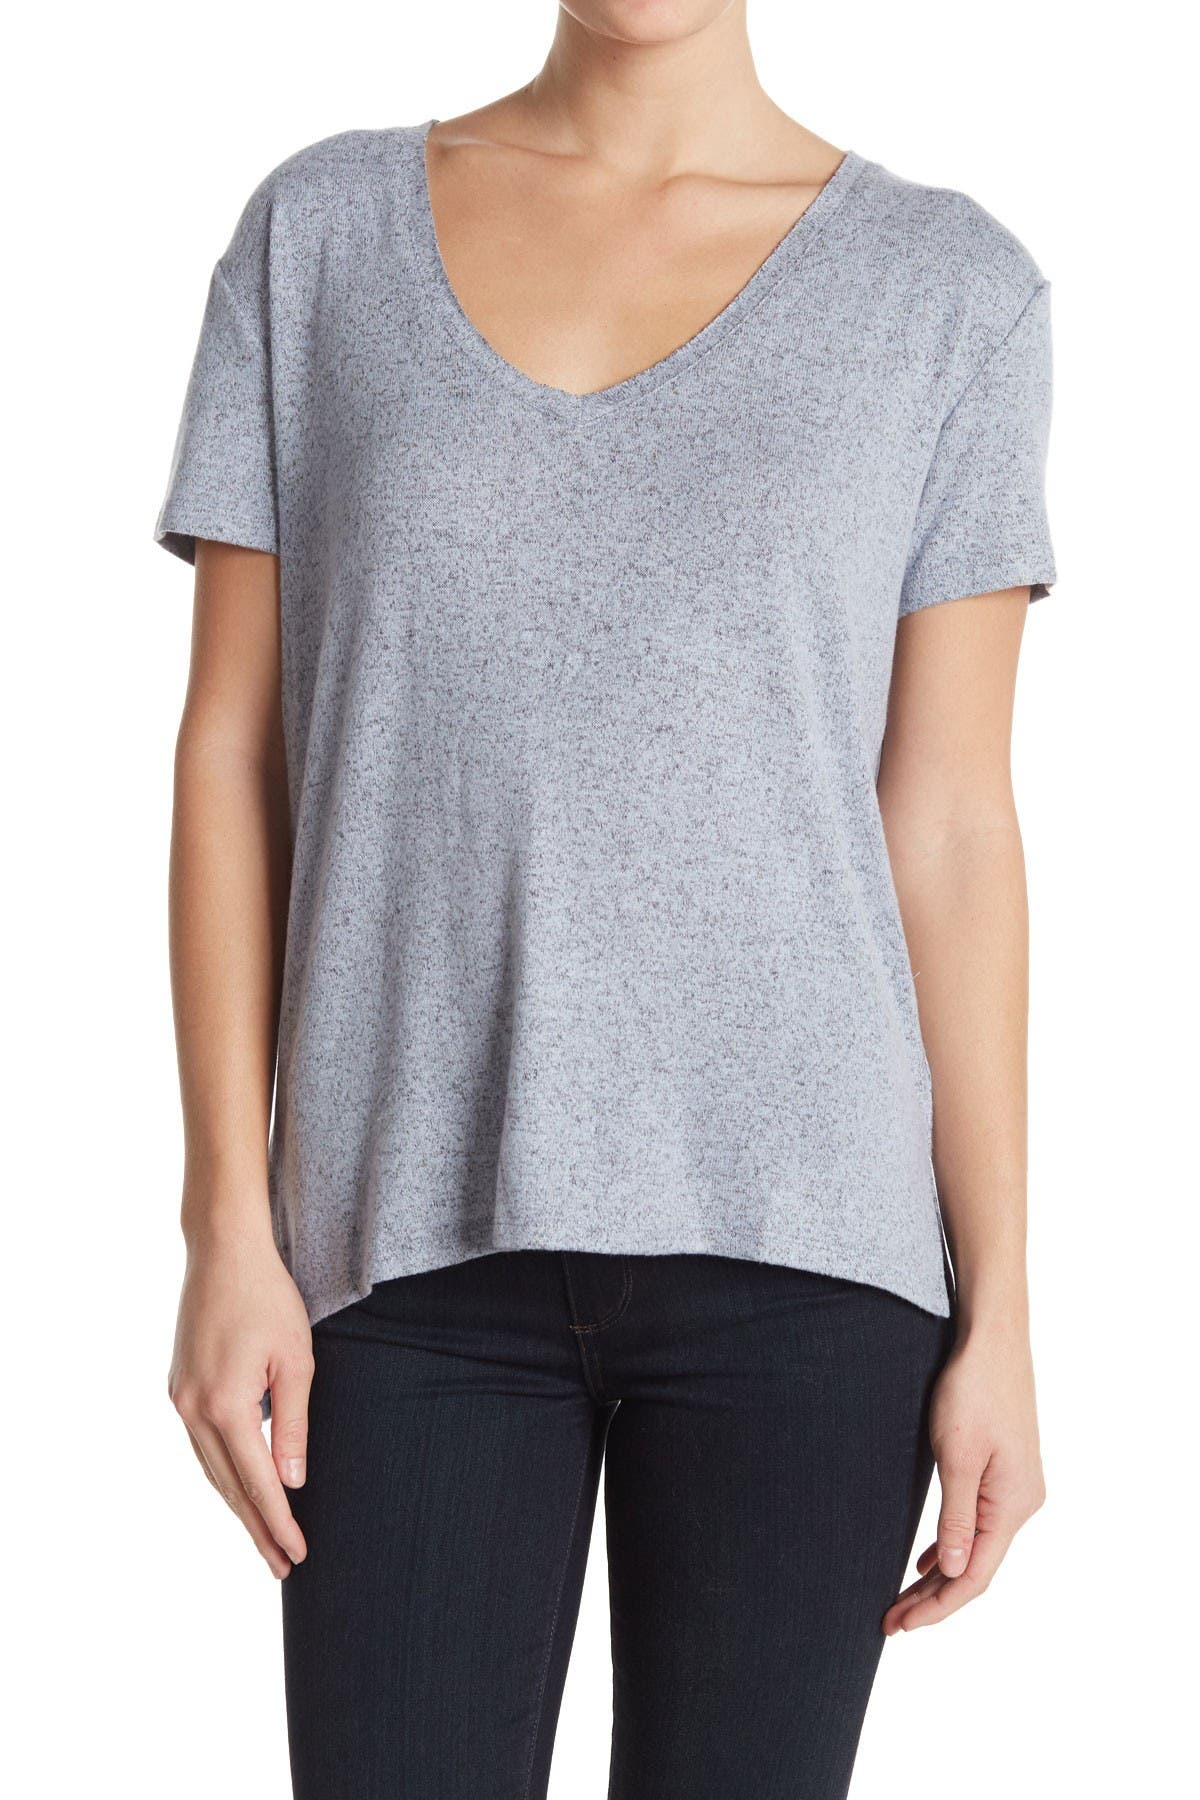 Image of Caslon Brushed Knit V-Neck T-Shirt